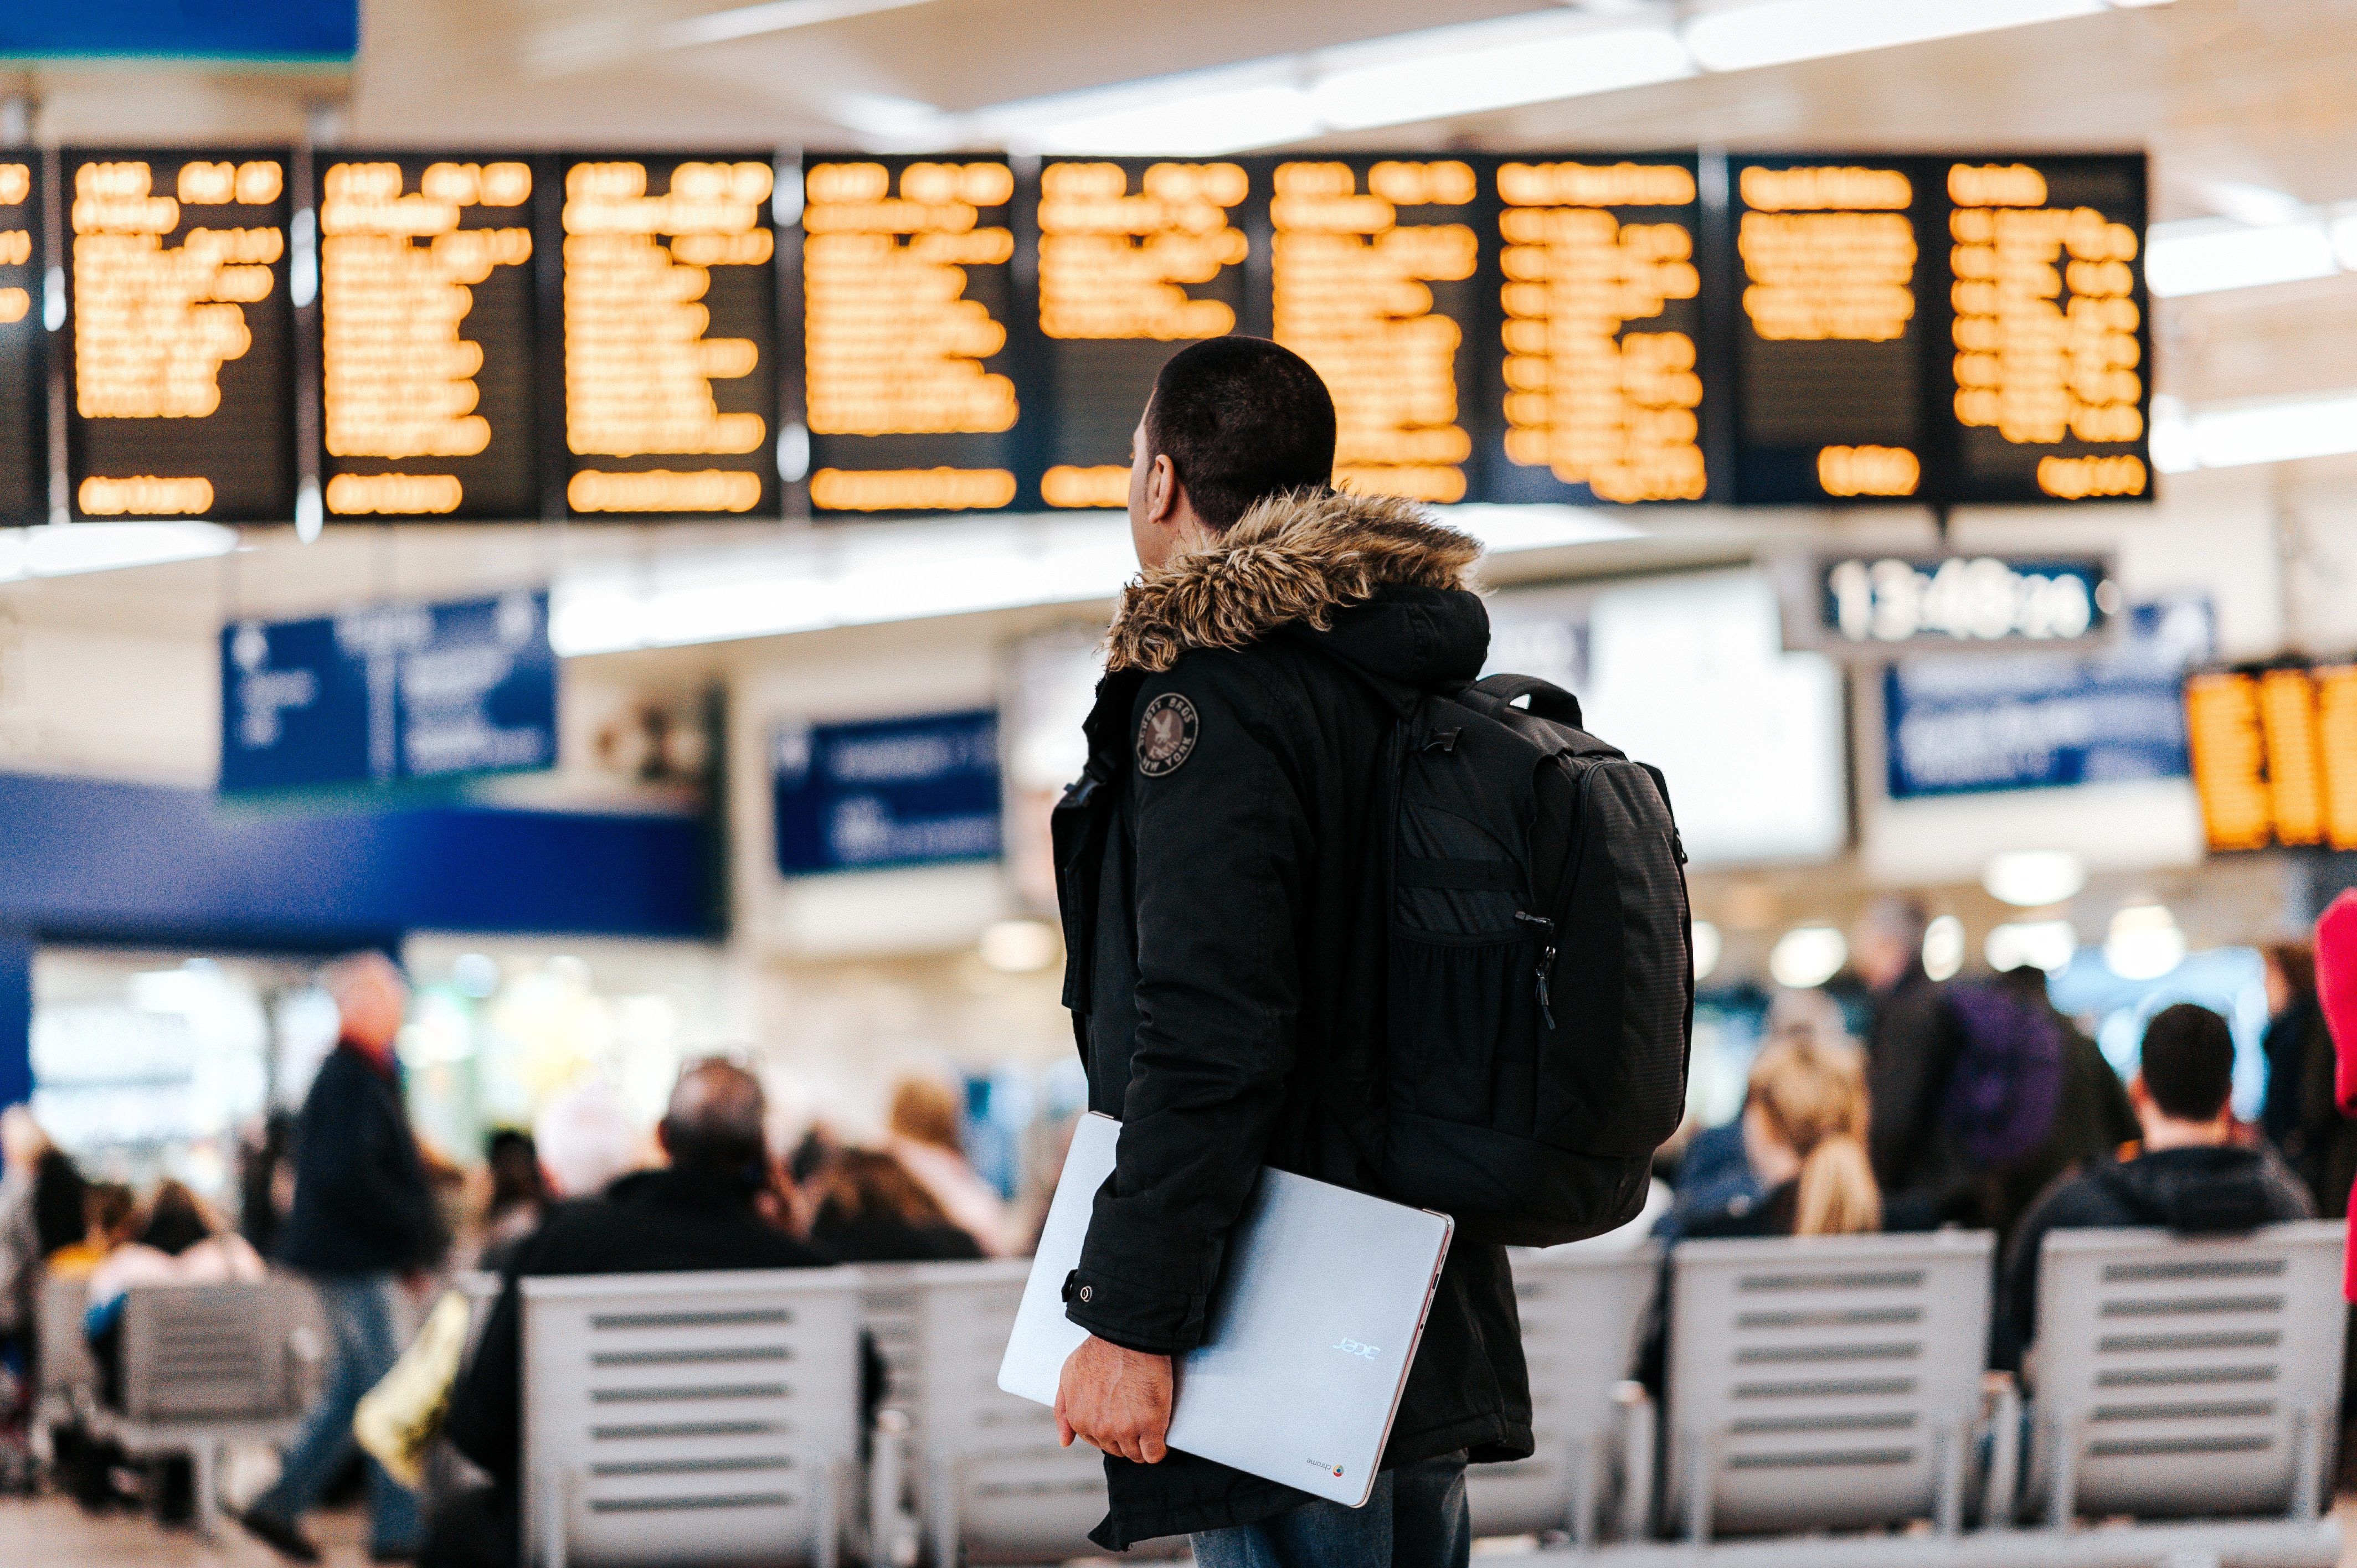 5 steps to healthy holiday travel